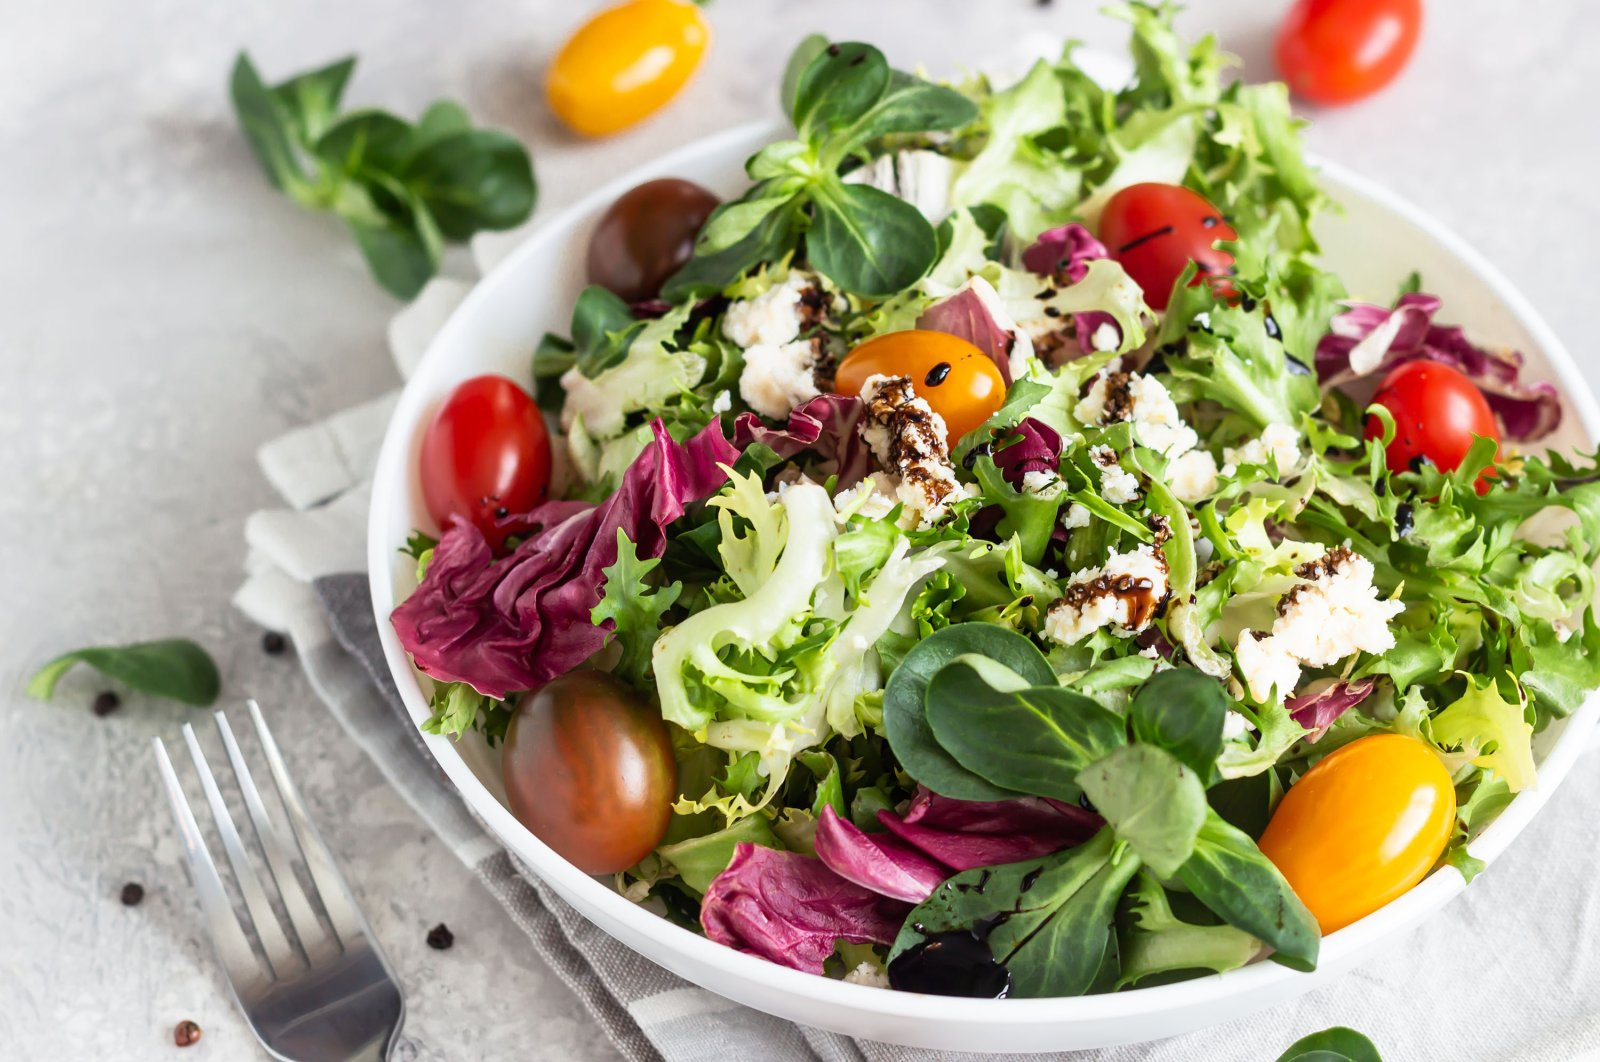 A fresh seasonal salad makes for a perfect side dish. But why not make it your main dish and cut down on time in the kitchen altogether? (Shutterstock Photo)